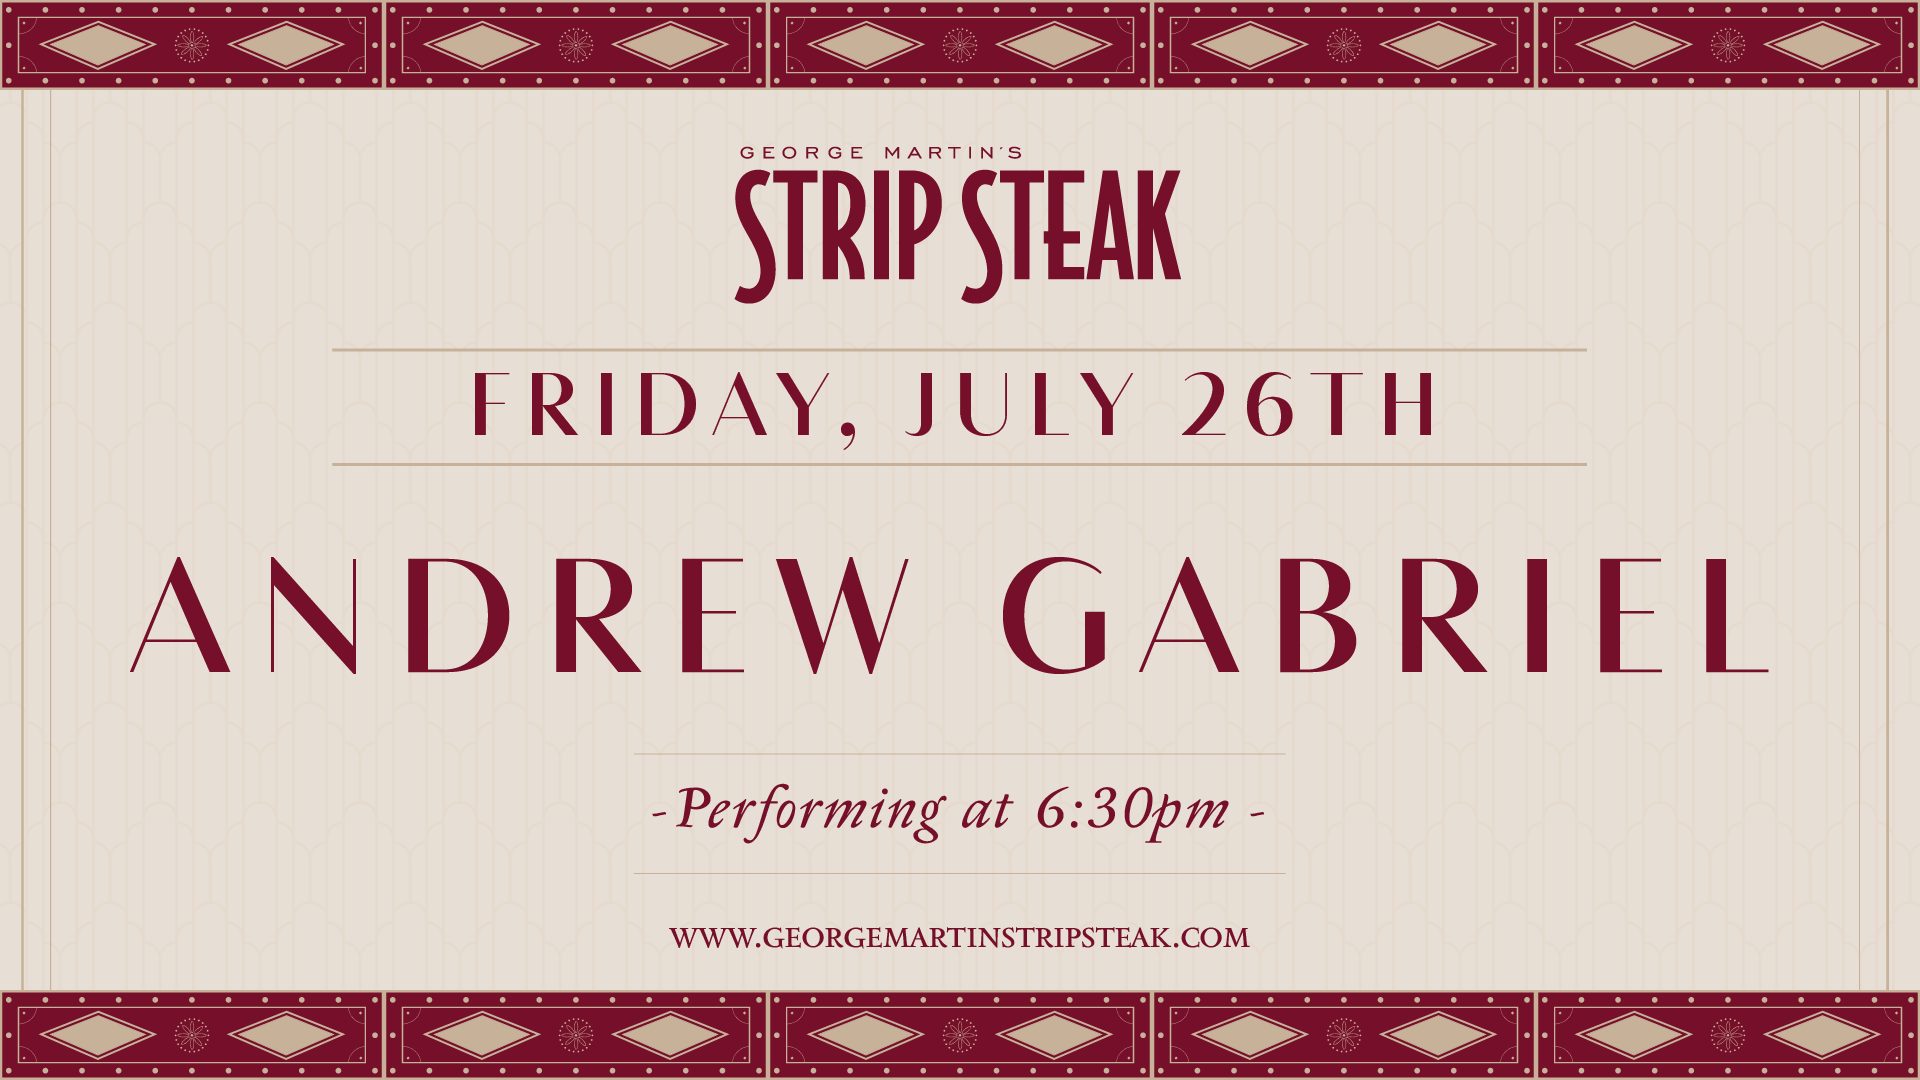 Flyer for live music with Andrew Gabriel on Friday July 26th at 6:30pm.